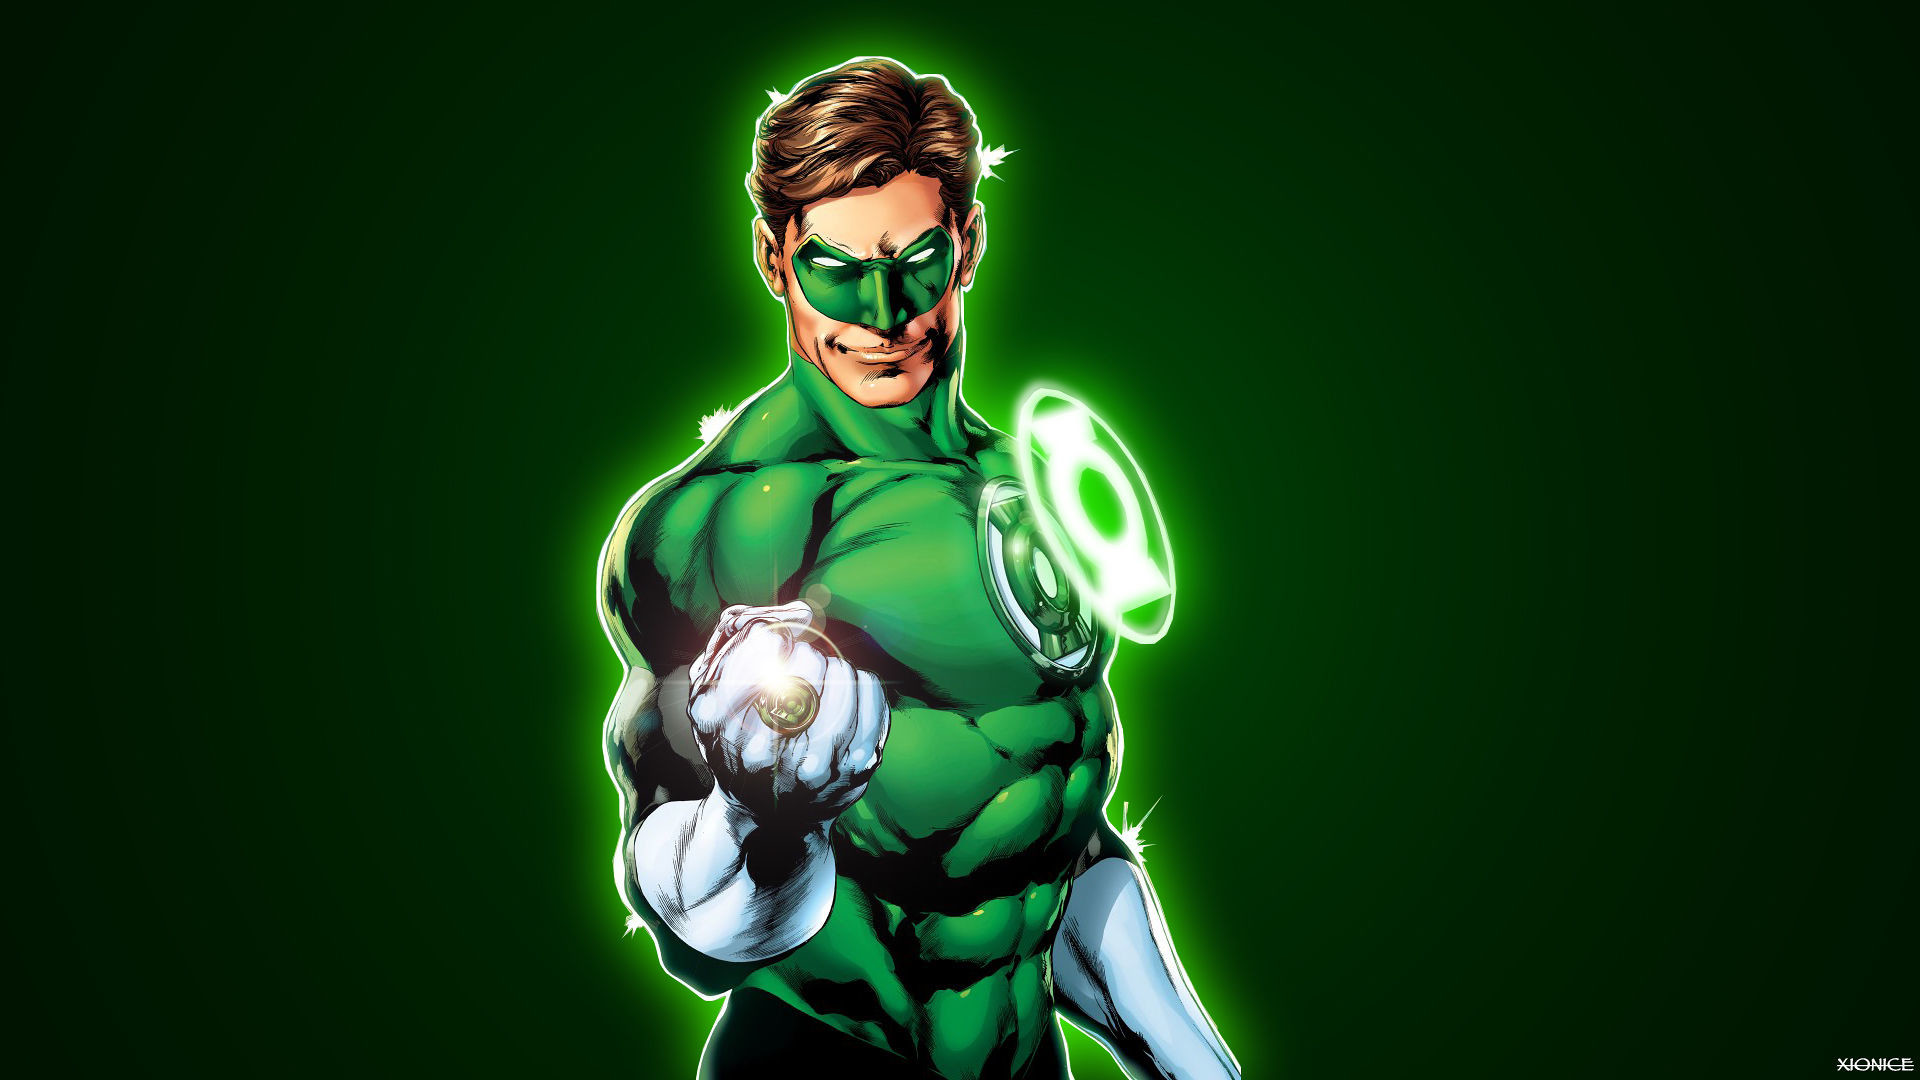 Explore Green Lantern Actor, Green Lantern Corps, and more!